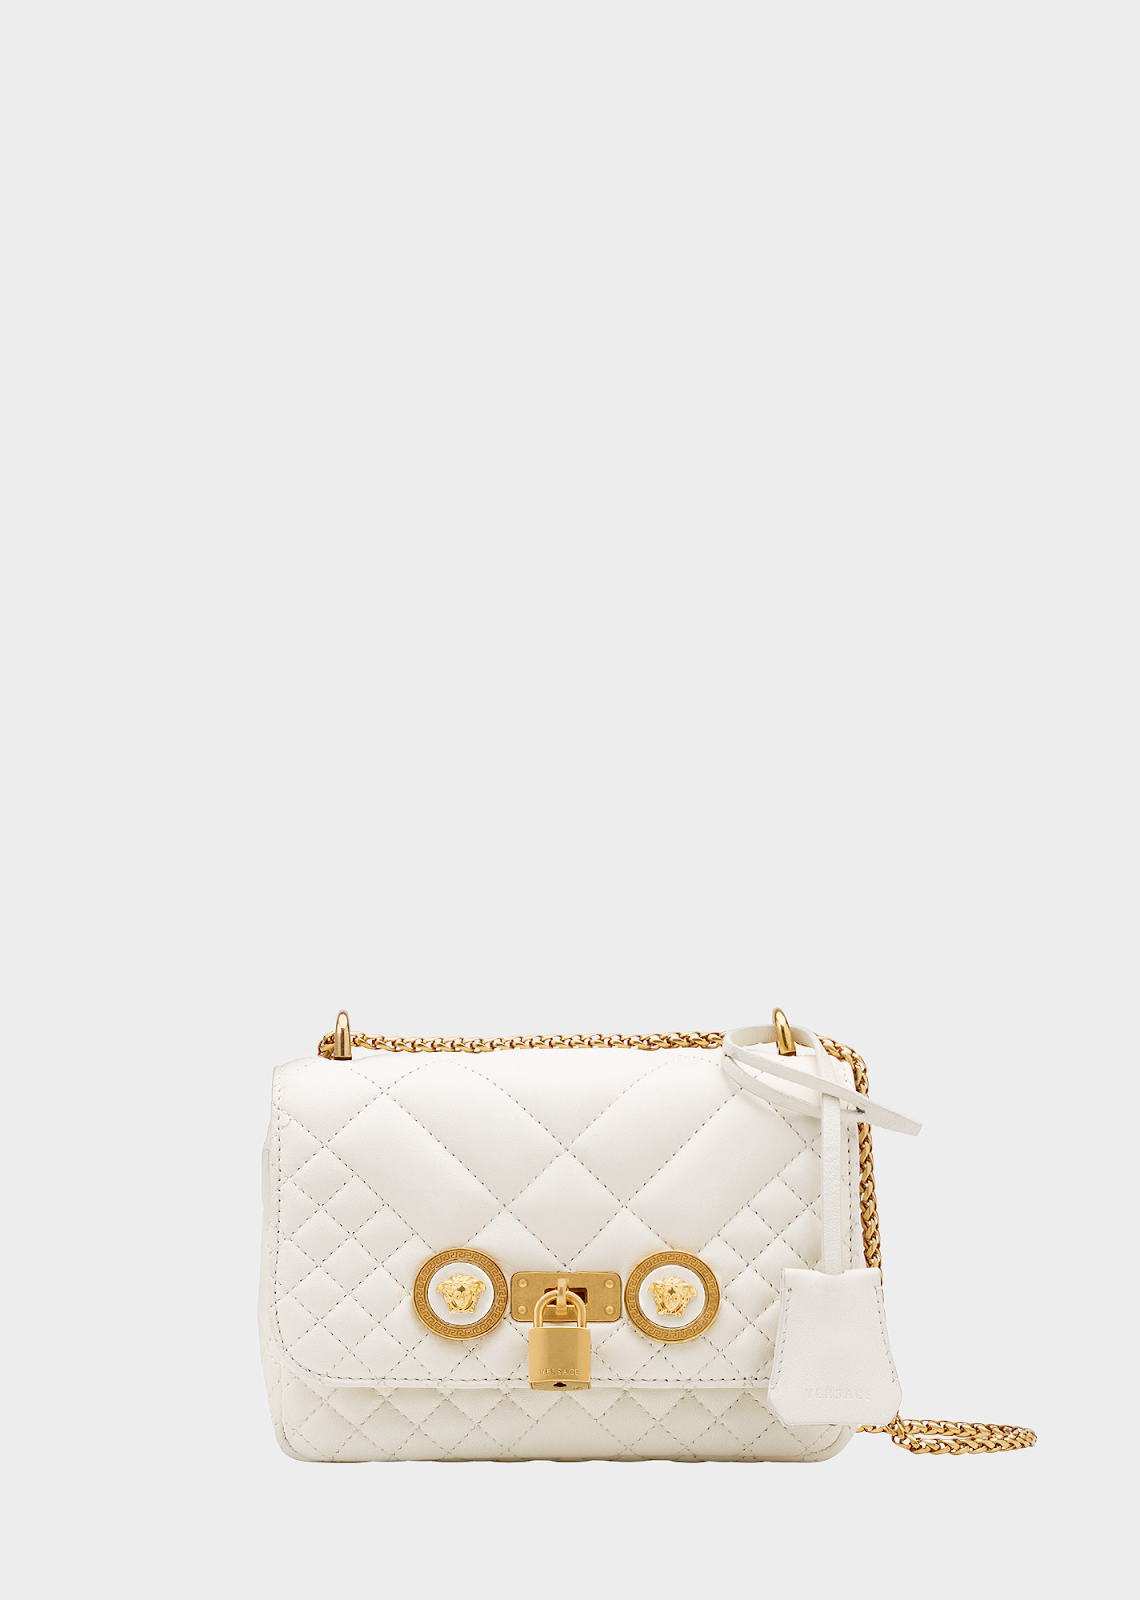 f8cca77080d0 VERSACE BAGS MODEL FOR VALENTINE S DAY – SMALL QUILTED ICON SHOULDER ...